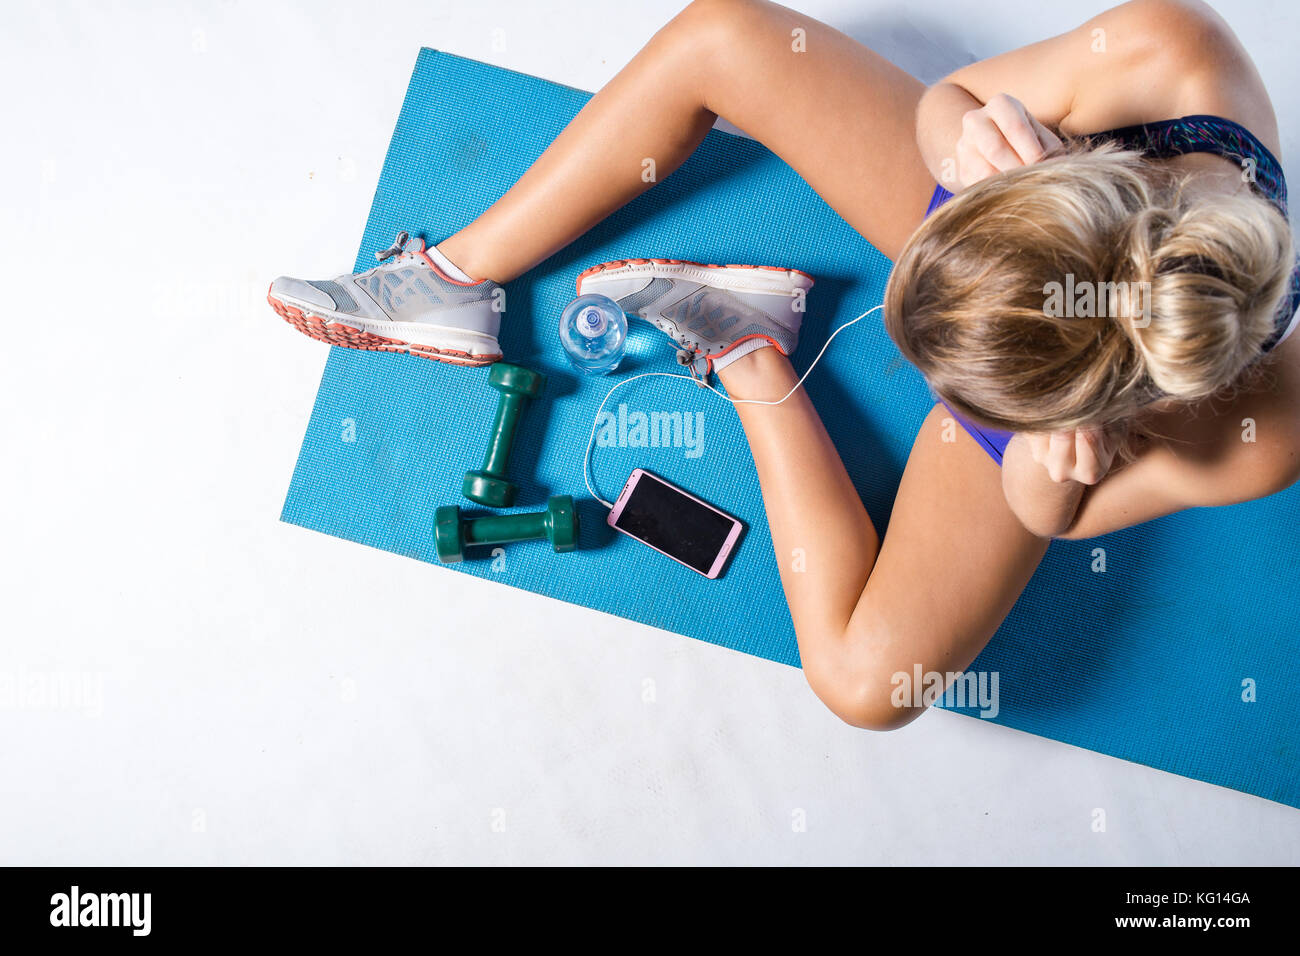 Female fitness model resting after an intense workout and taking some a selfie in the mirror of the gym. - Stock Image